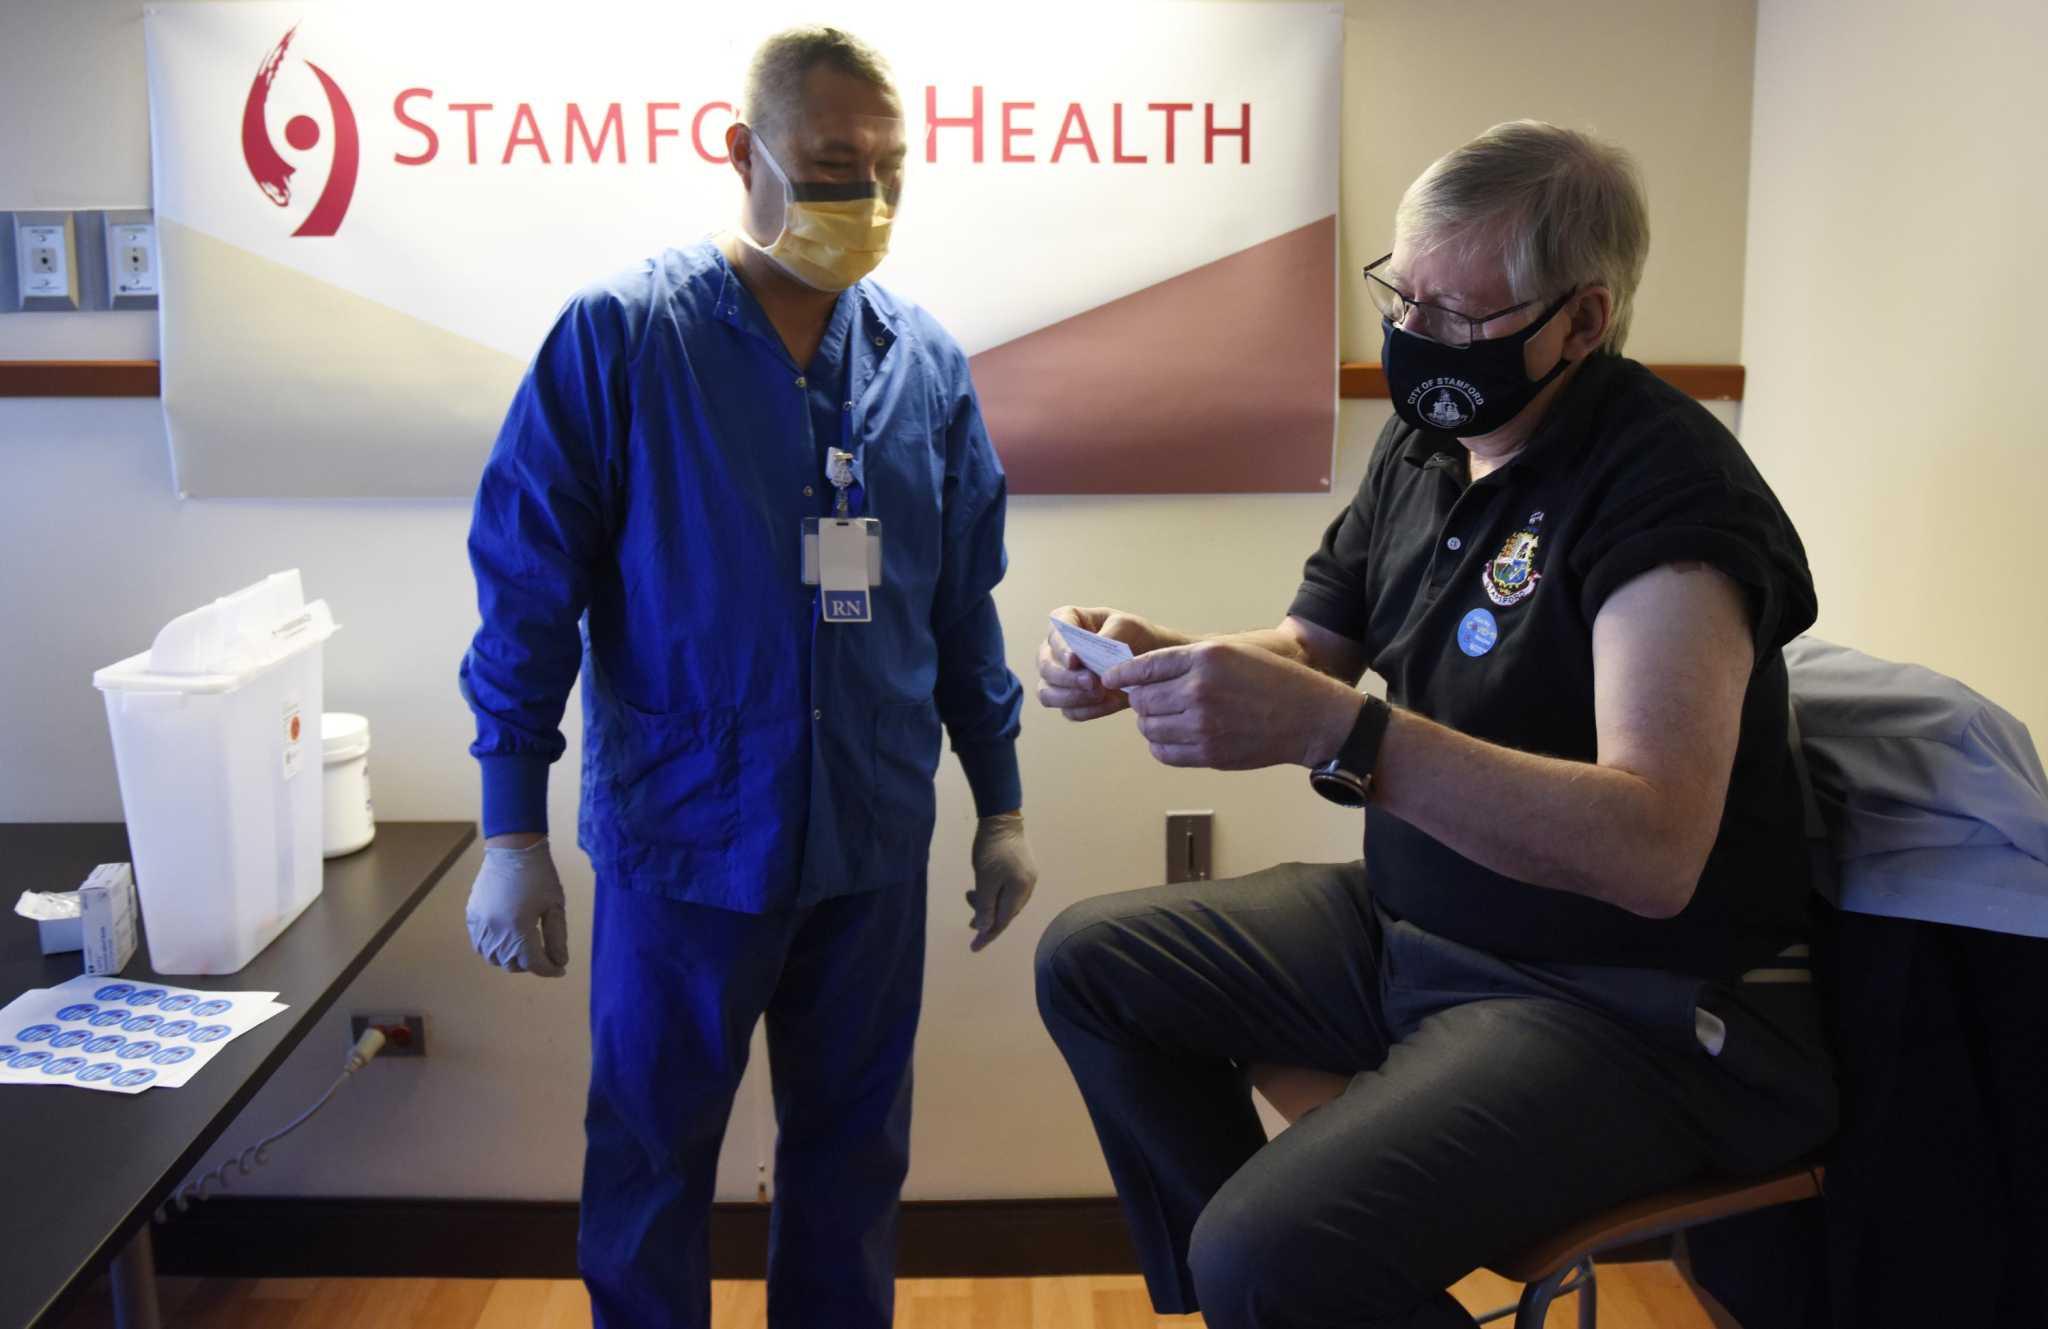 To ease diner worries, Stamford starts clinics to vaccinate restaurant, frontline workers